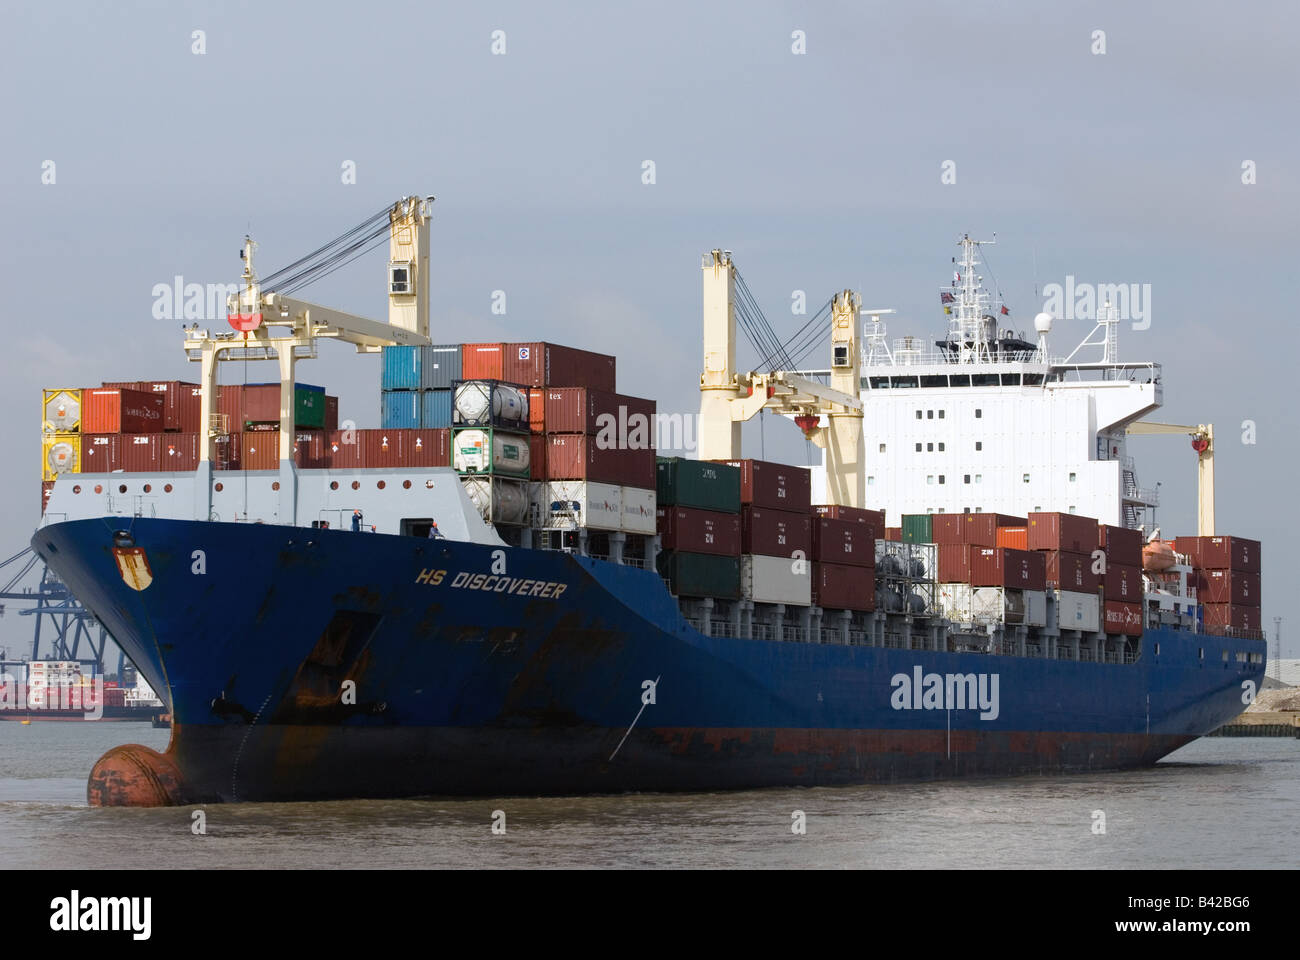 Container ship HS Discoverer, Port of Felixstowe, Suffolk, UK. - Stock Image